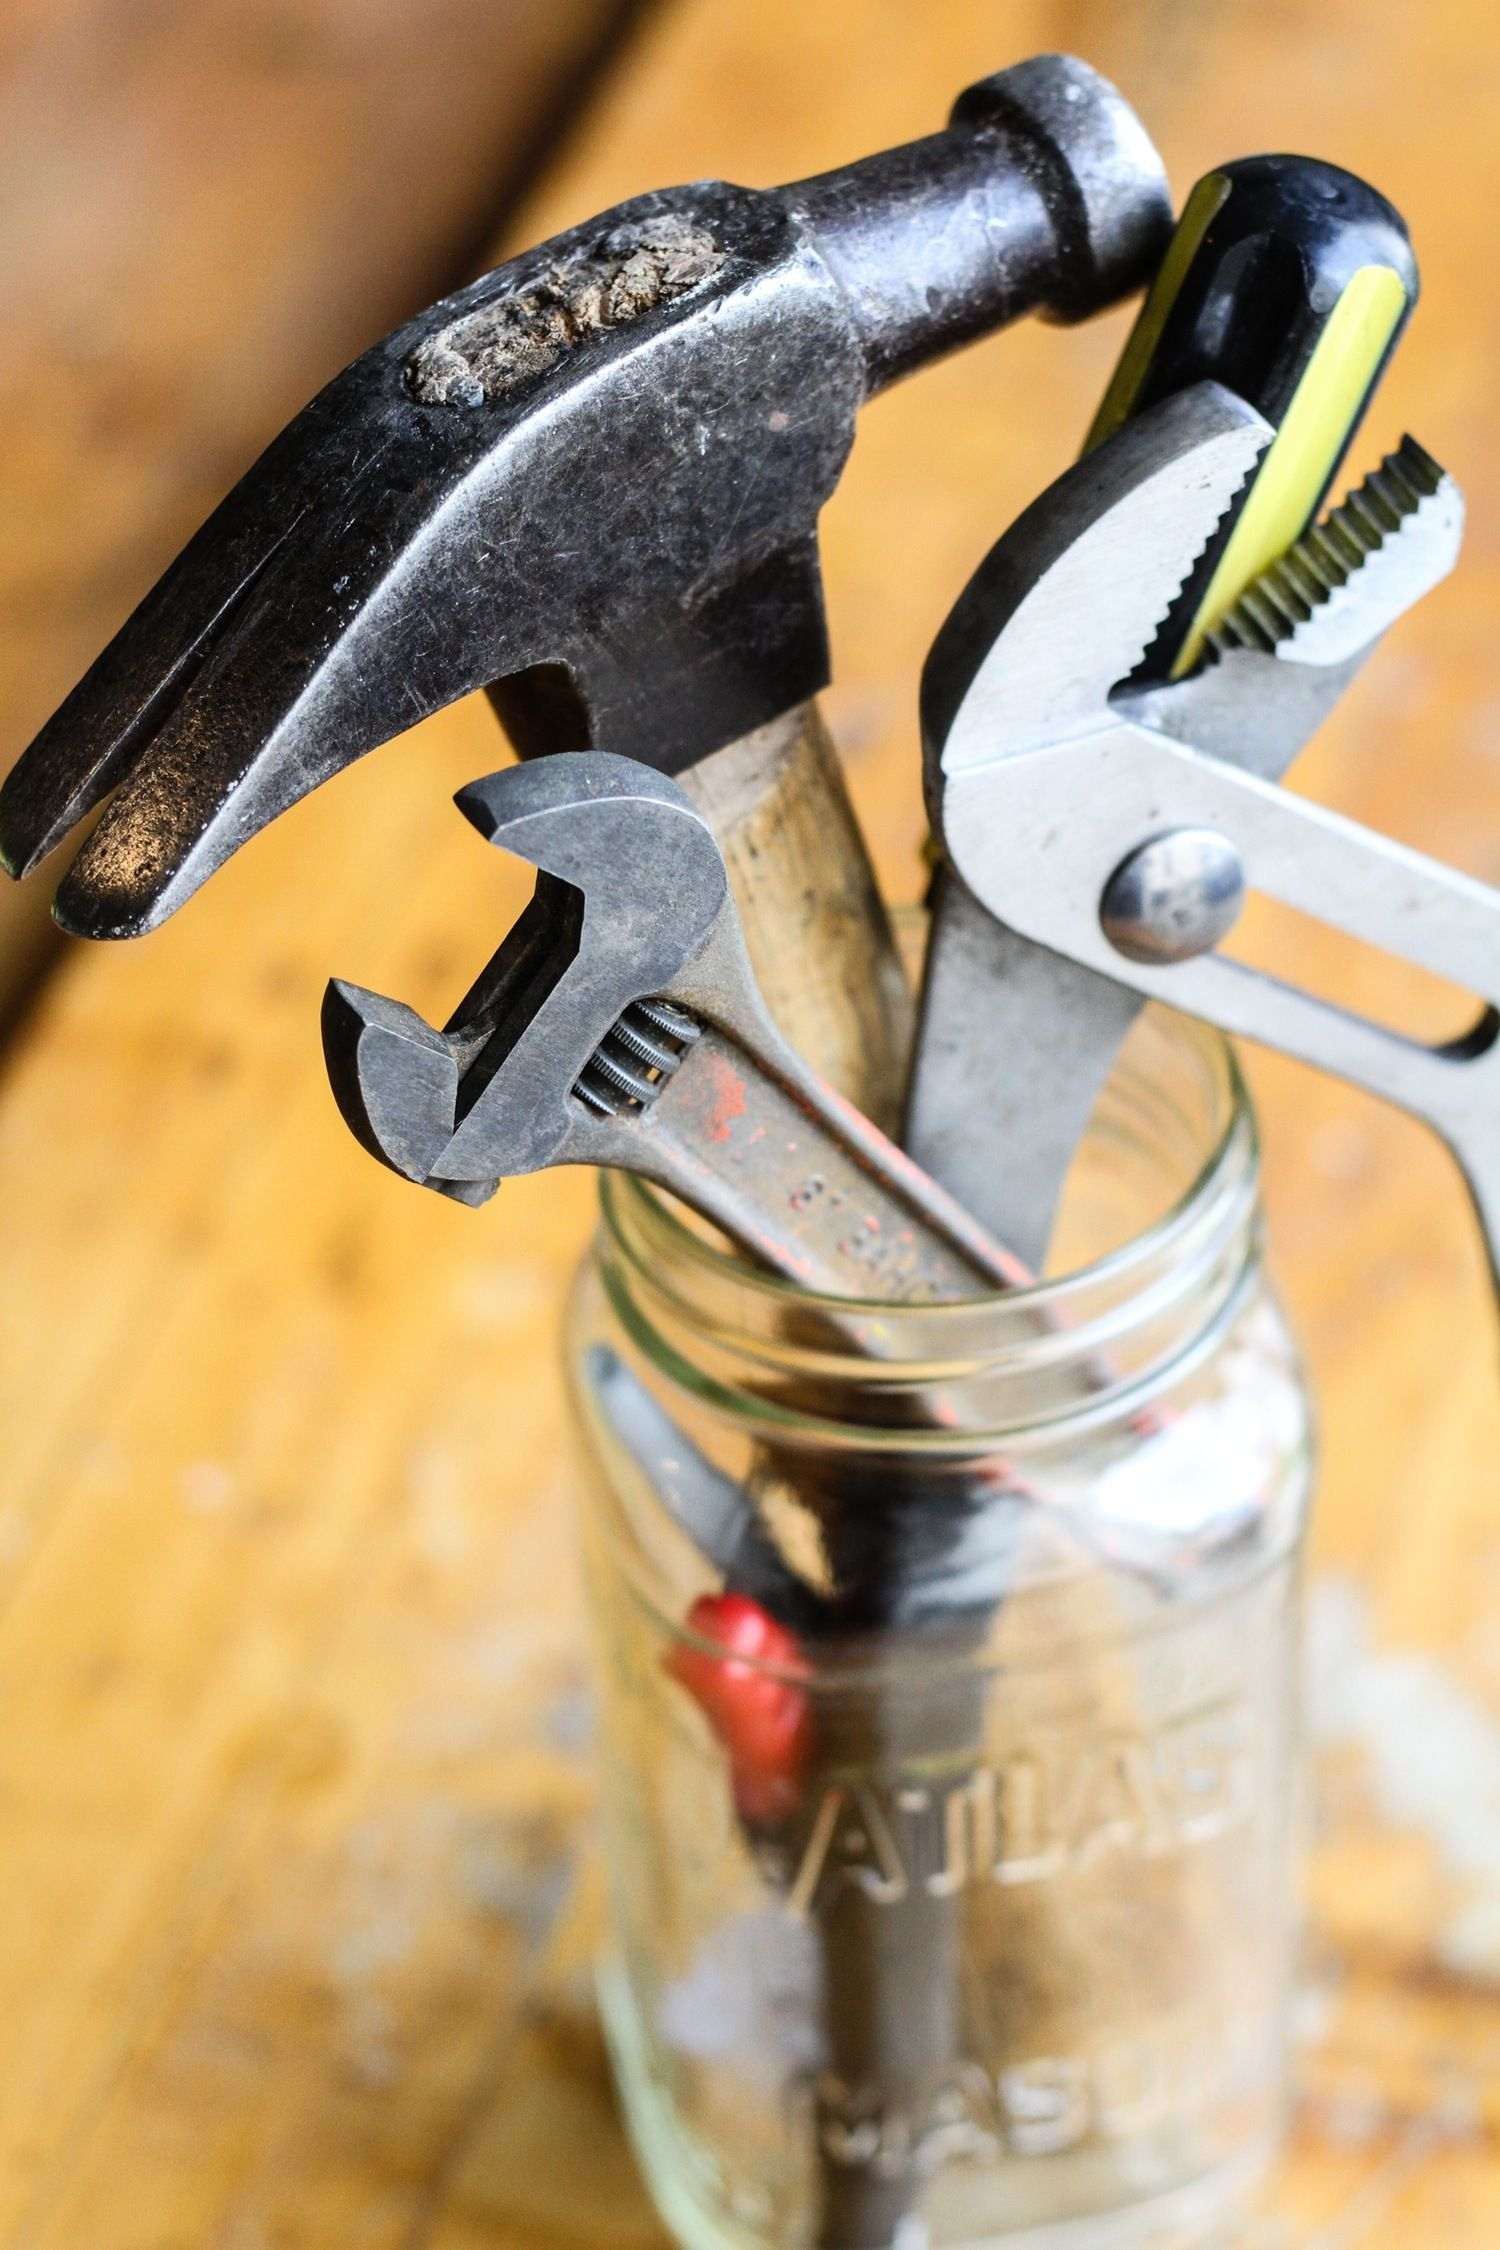 5 tried and true methods for removing rust from metal